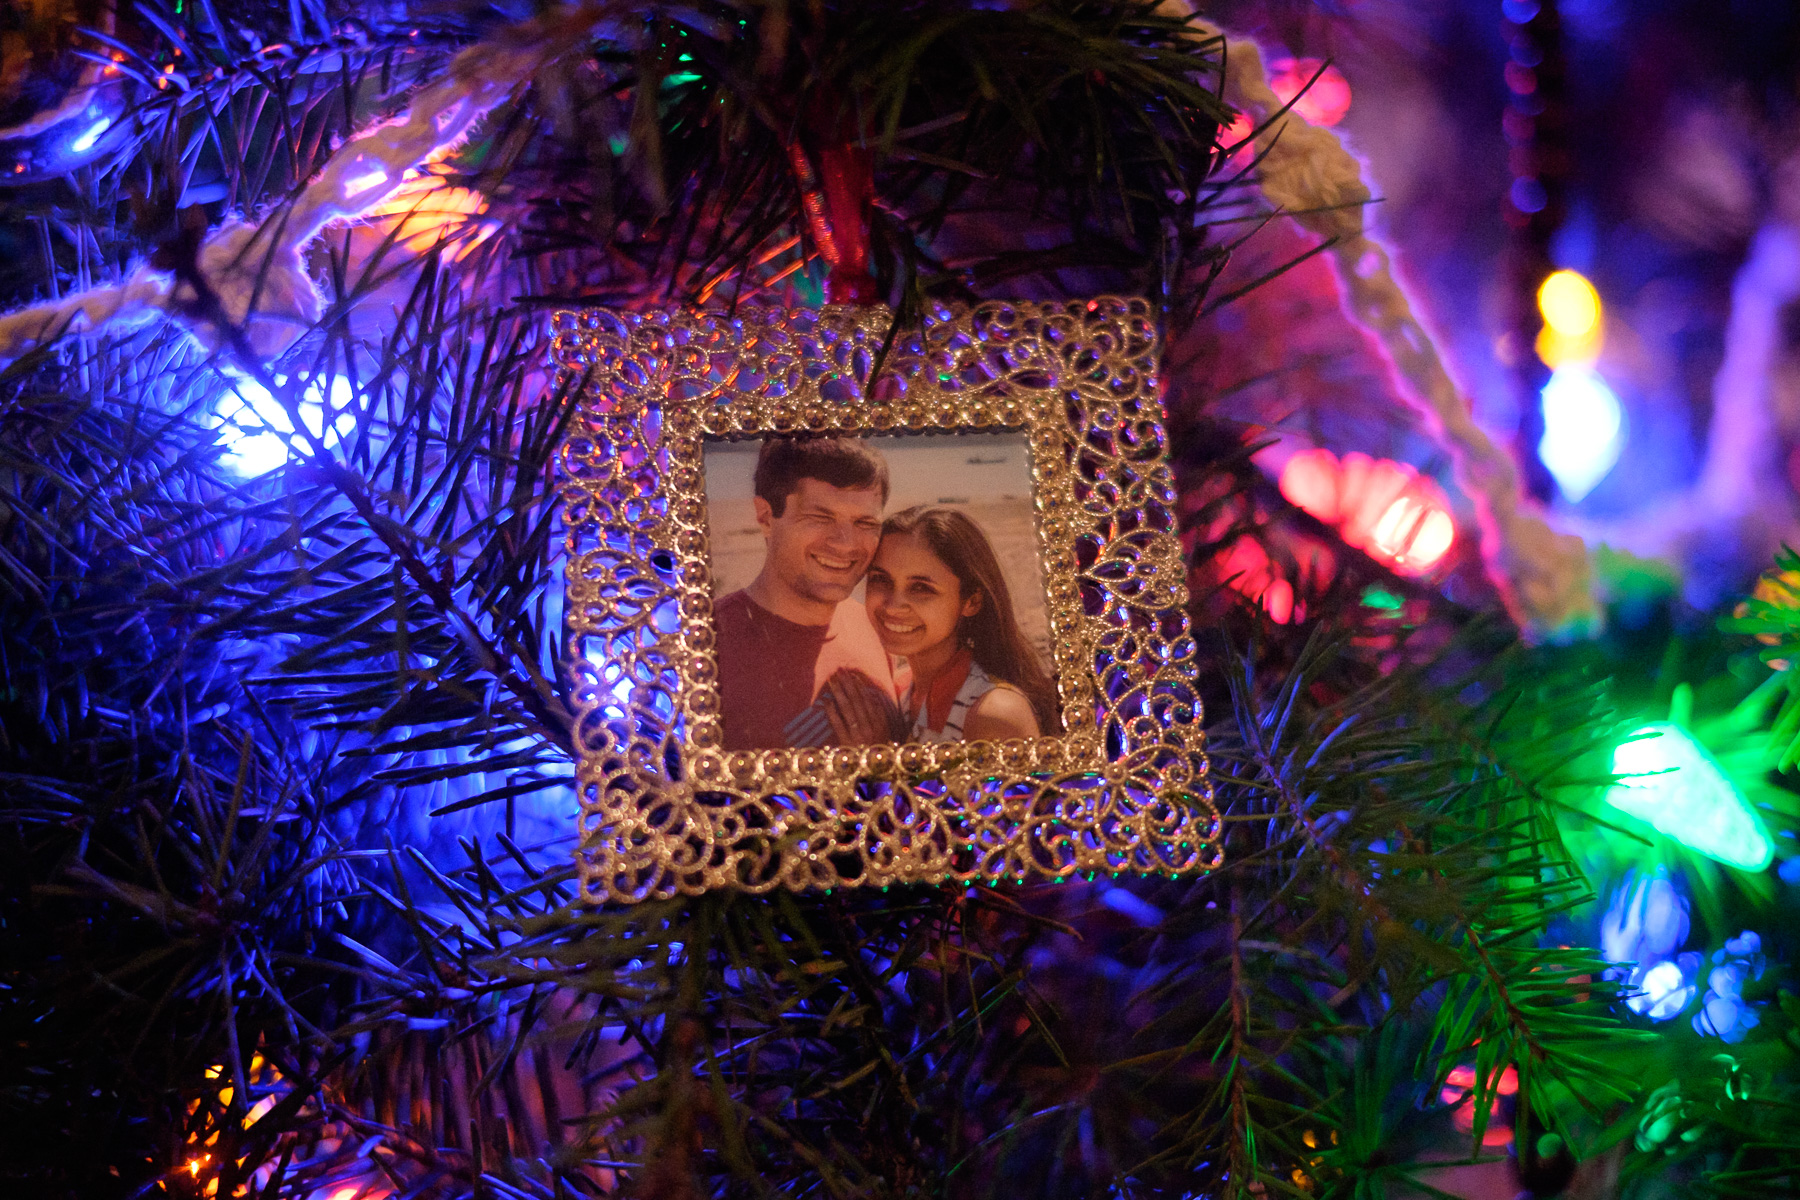 photo gift guide_ornaments-4225